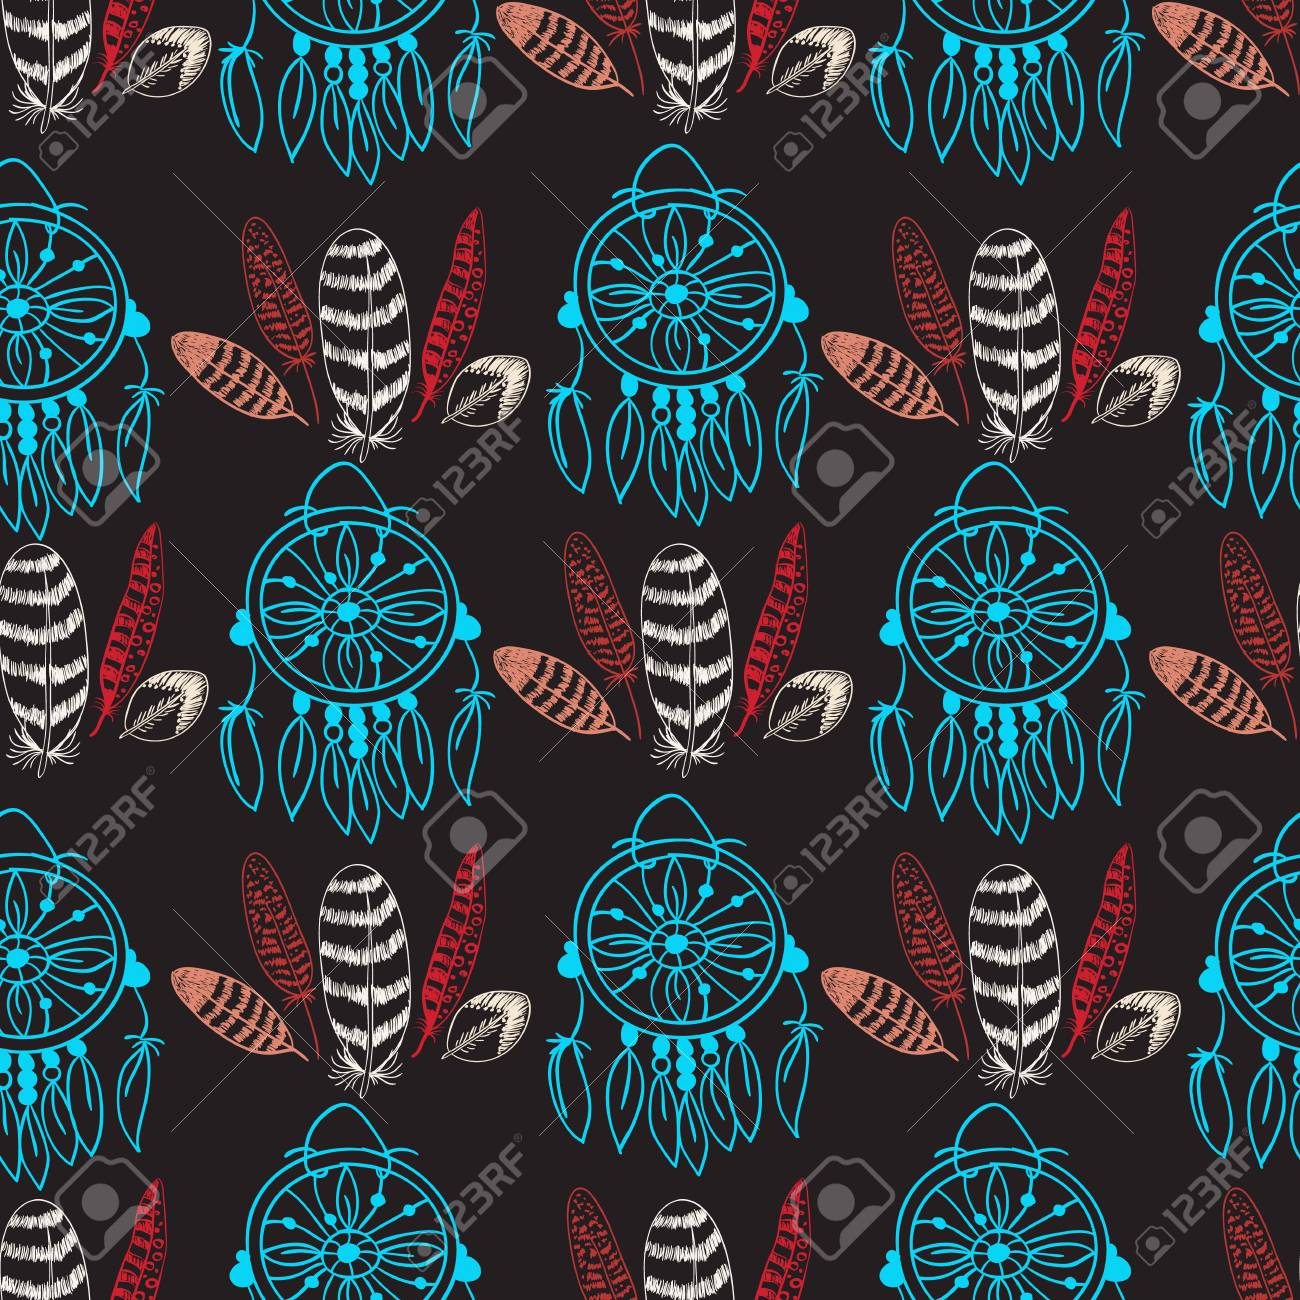 [33+] Native American Feathers Wallpaper on WallpaperSafari